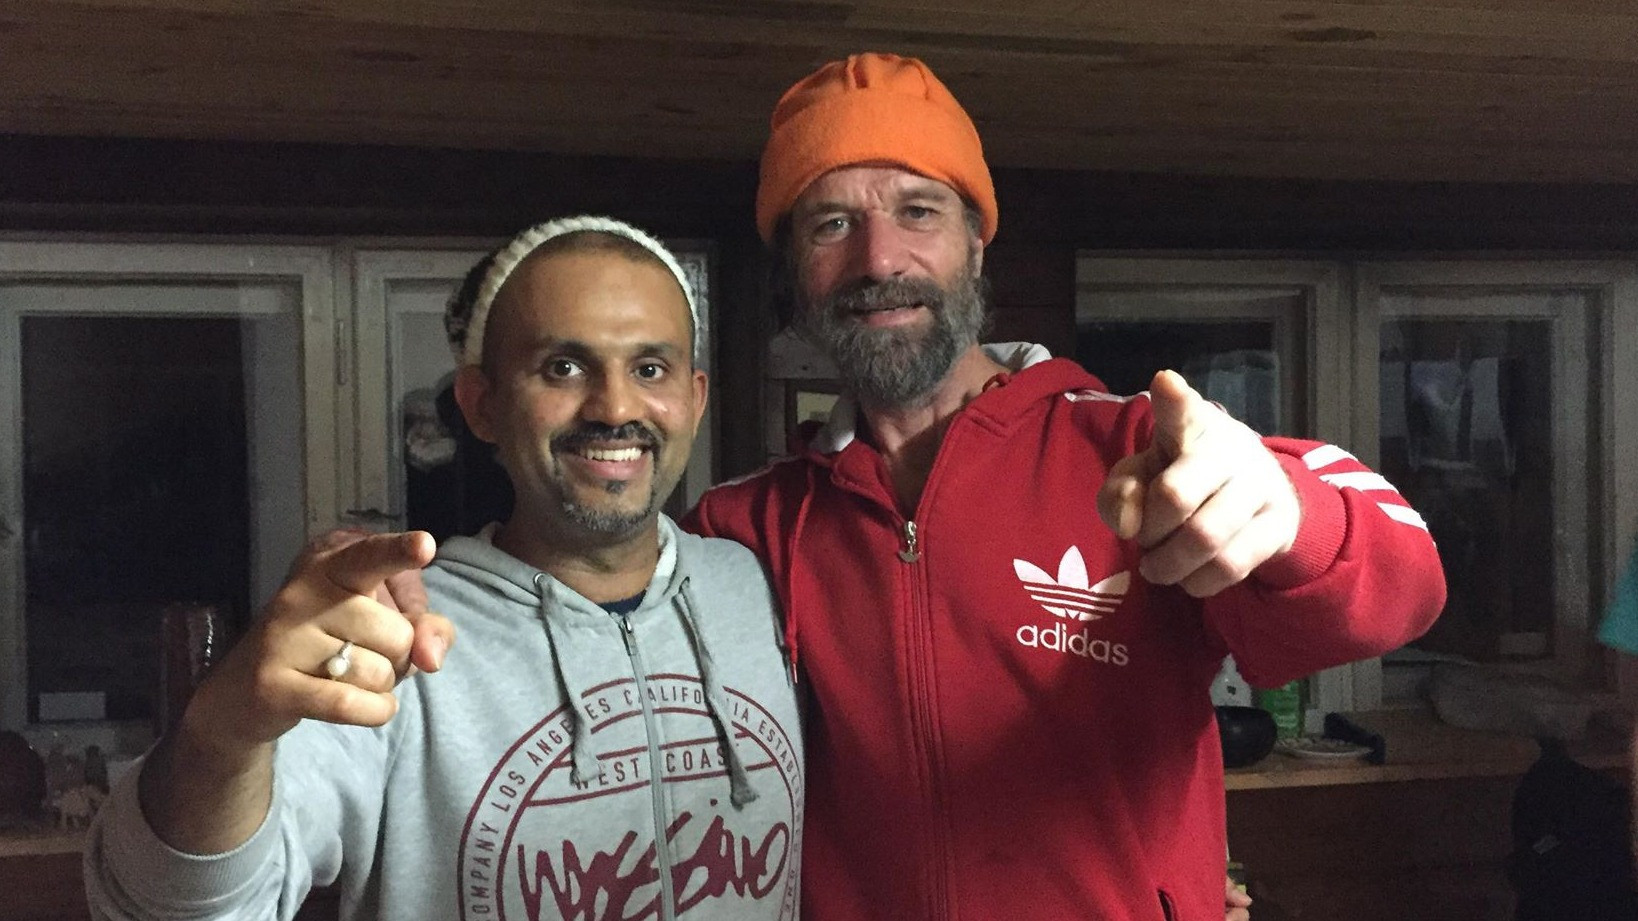 Image 8 of 18 - Experience the Wim Hof Method to get an impression of  at